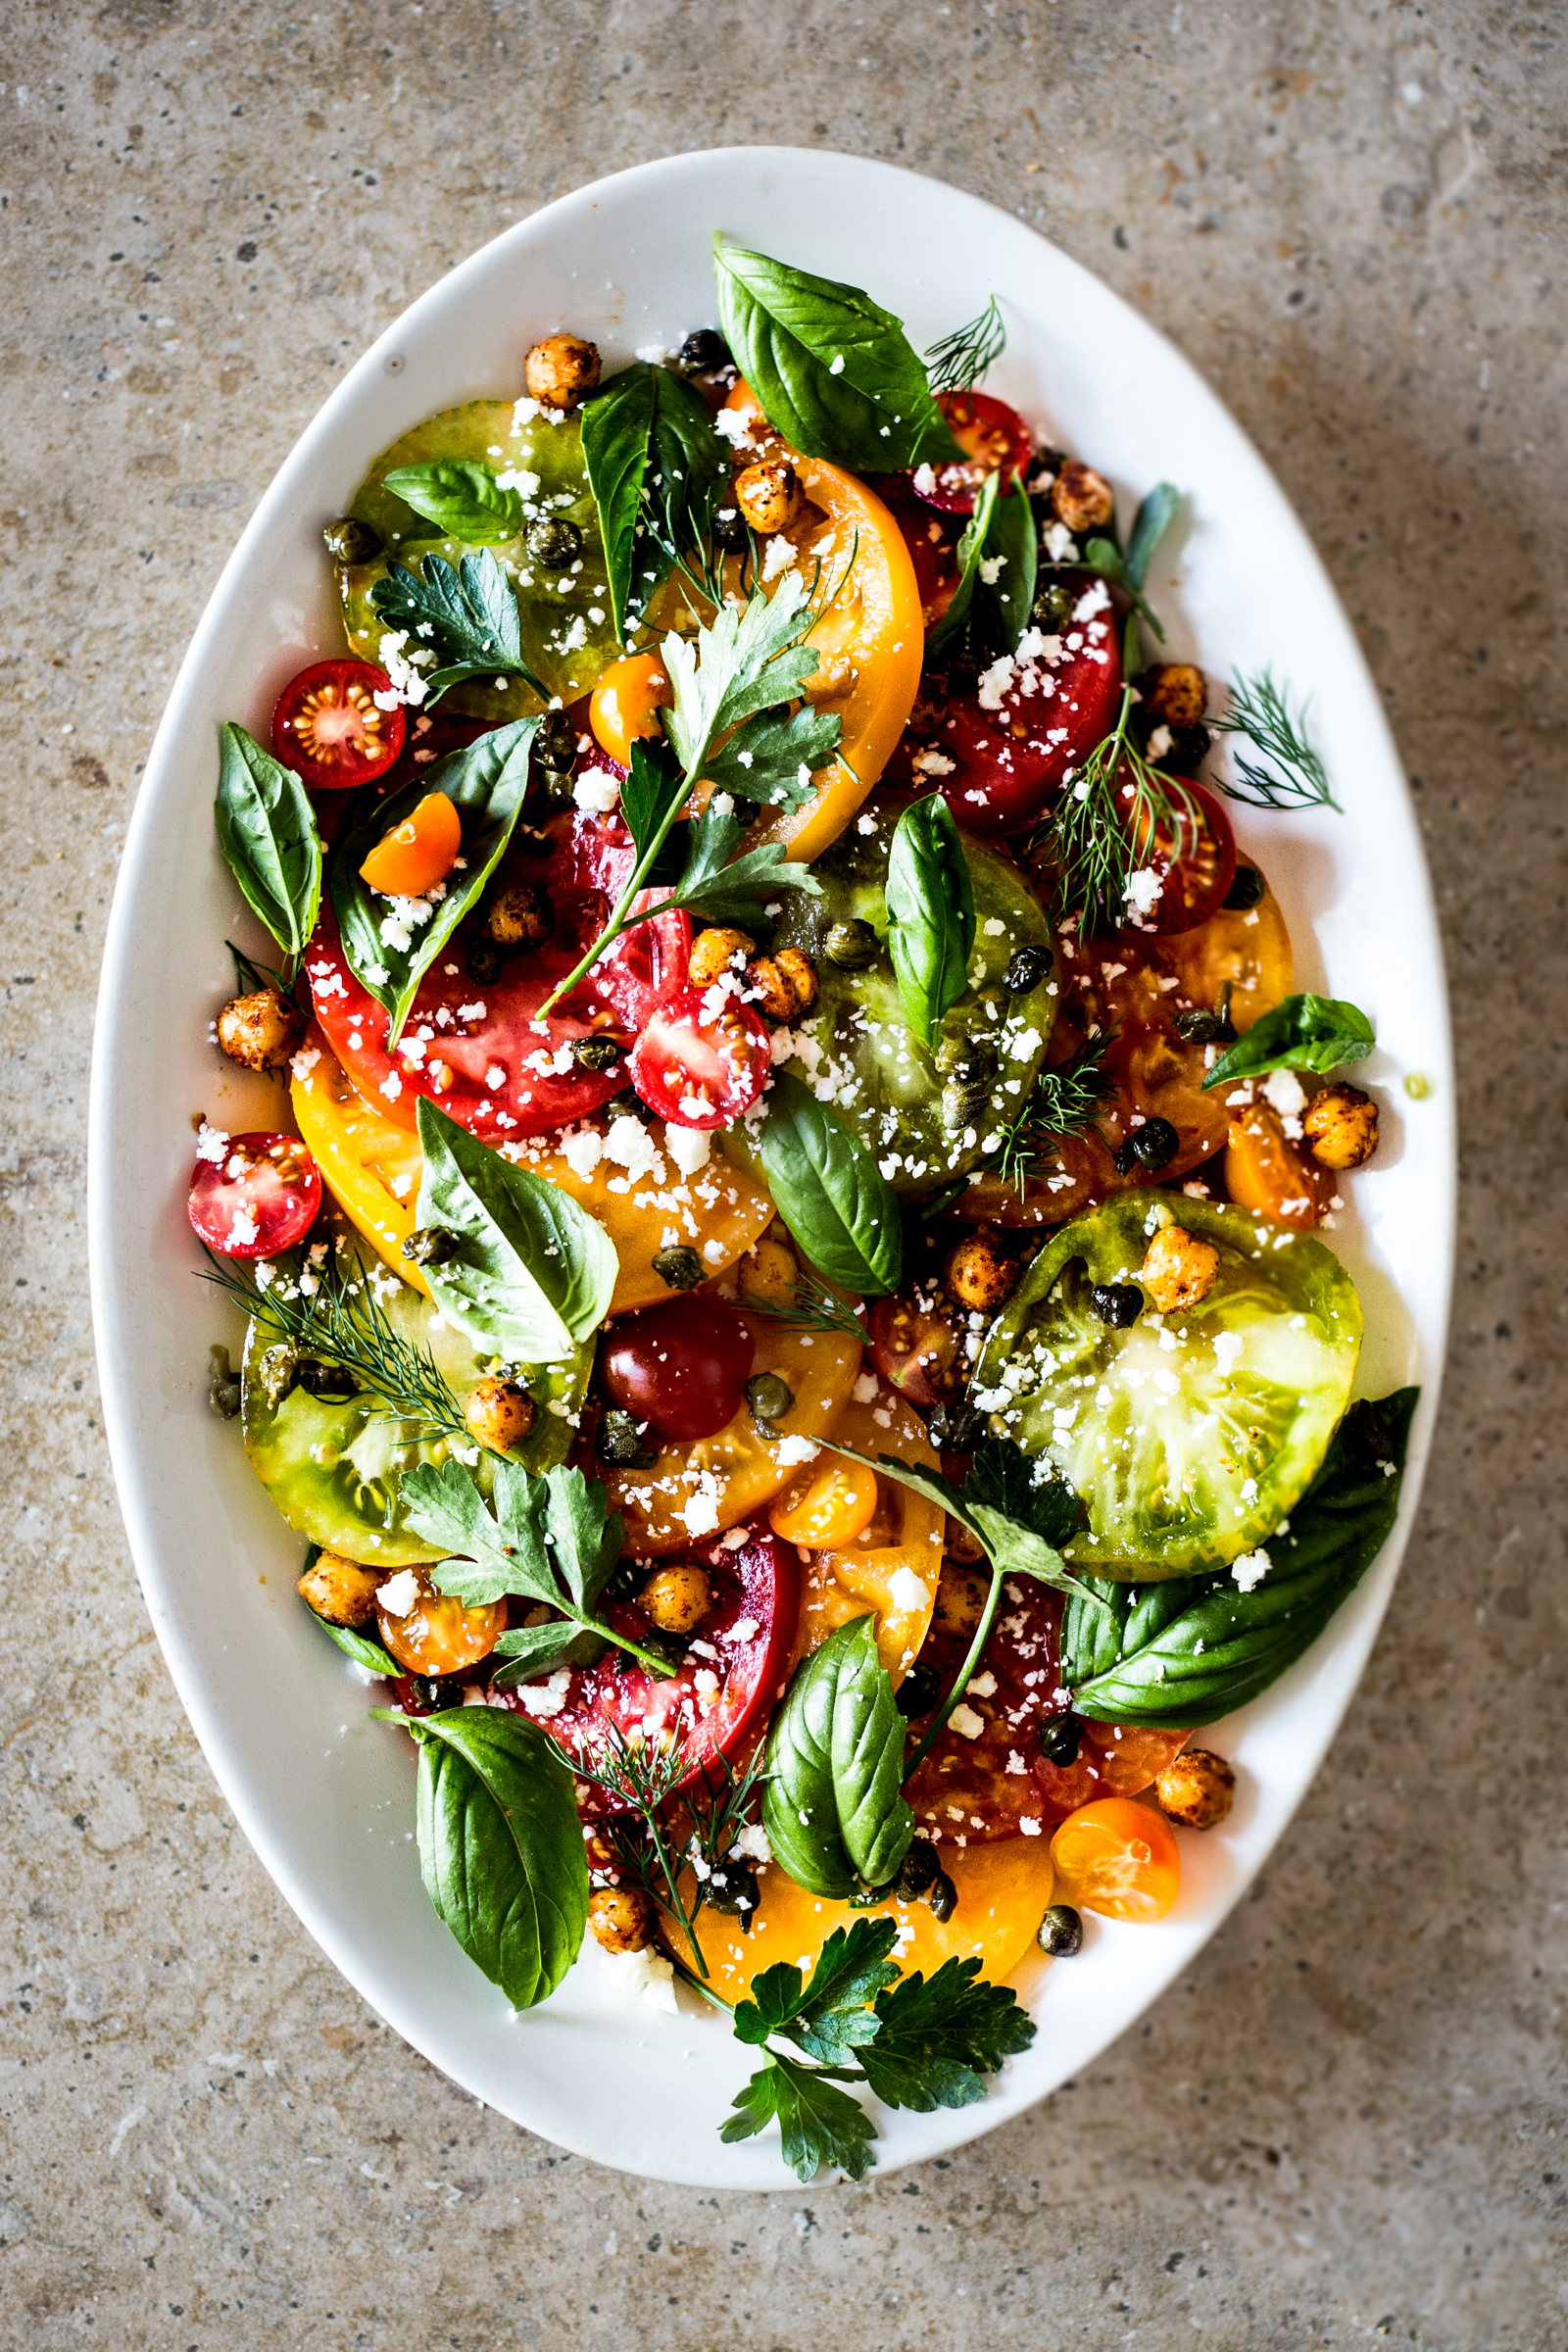 Heirloom Tomato & Herb Salad - Dishing Up the Dirt